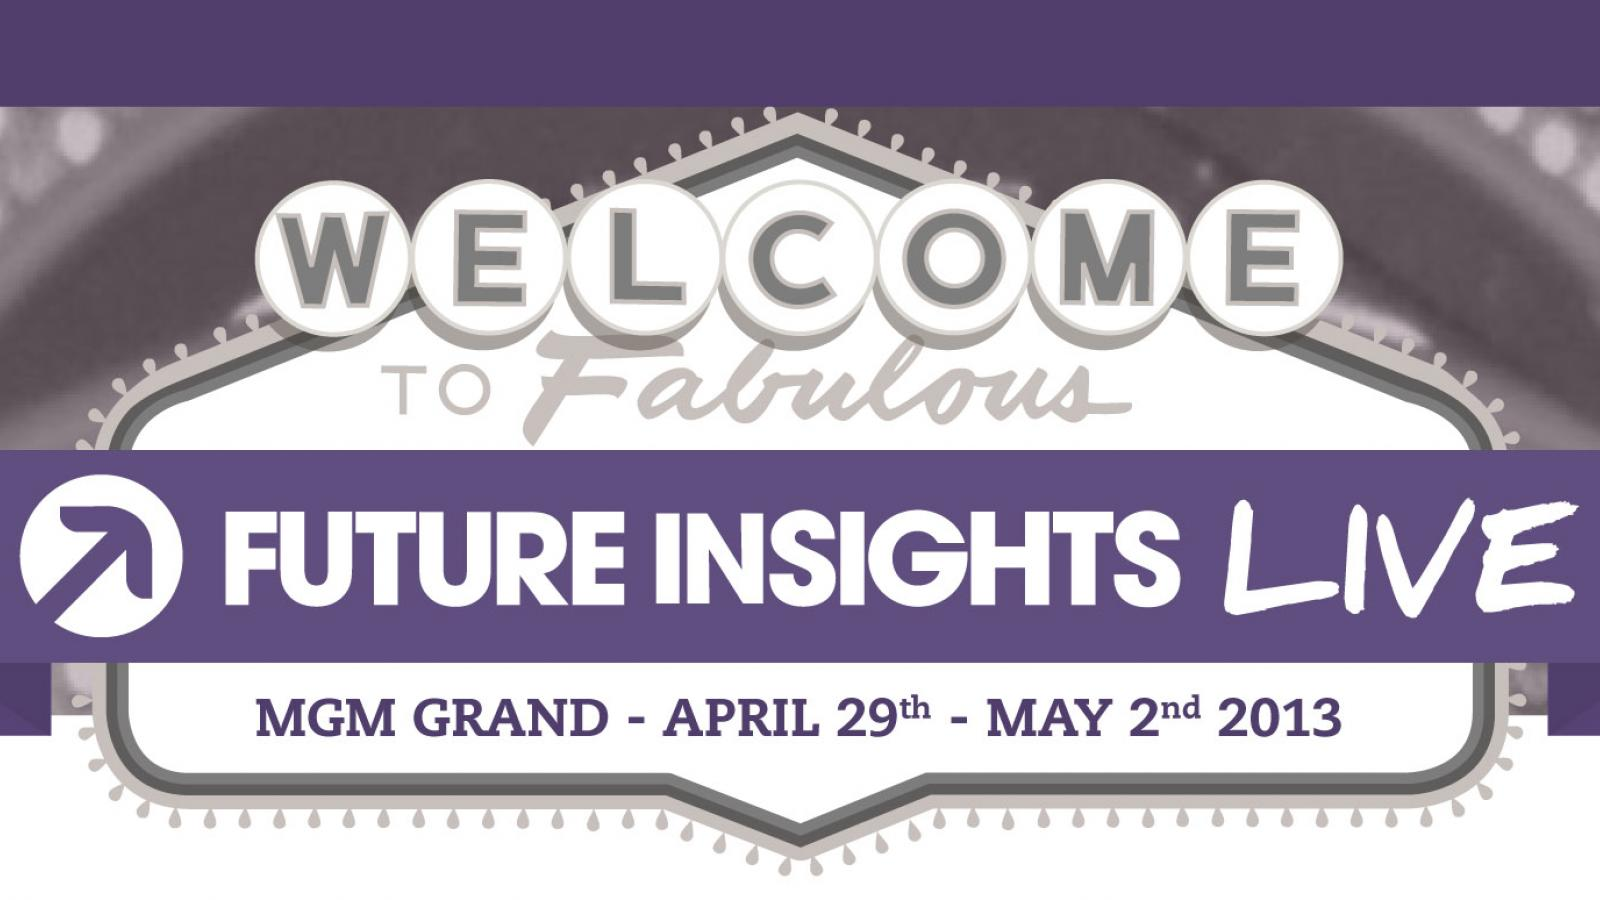 Event - Future Insights Live